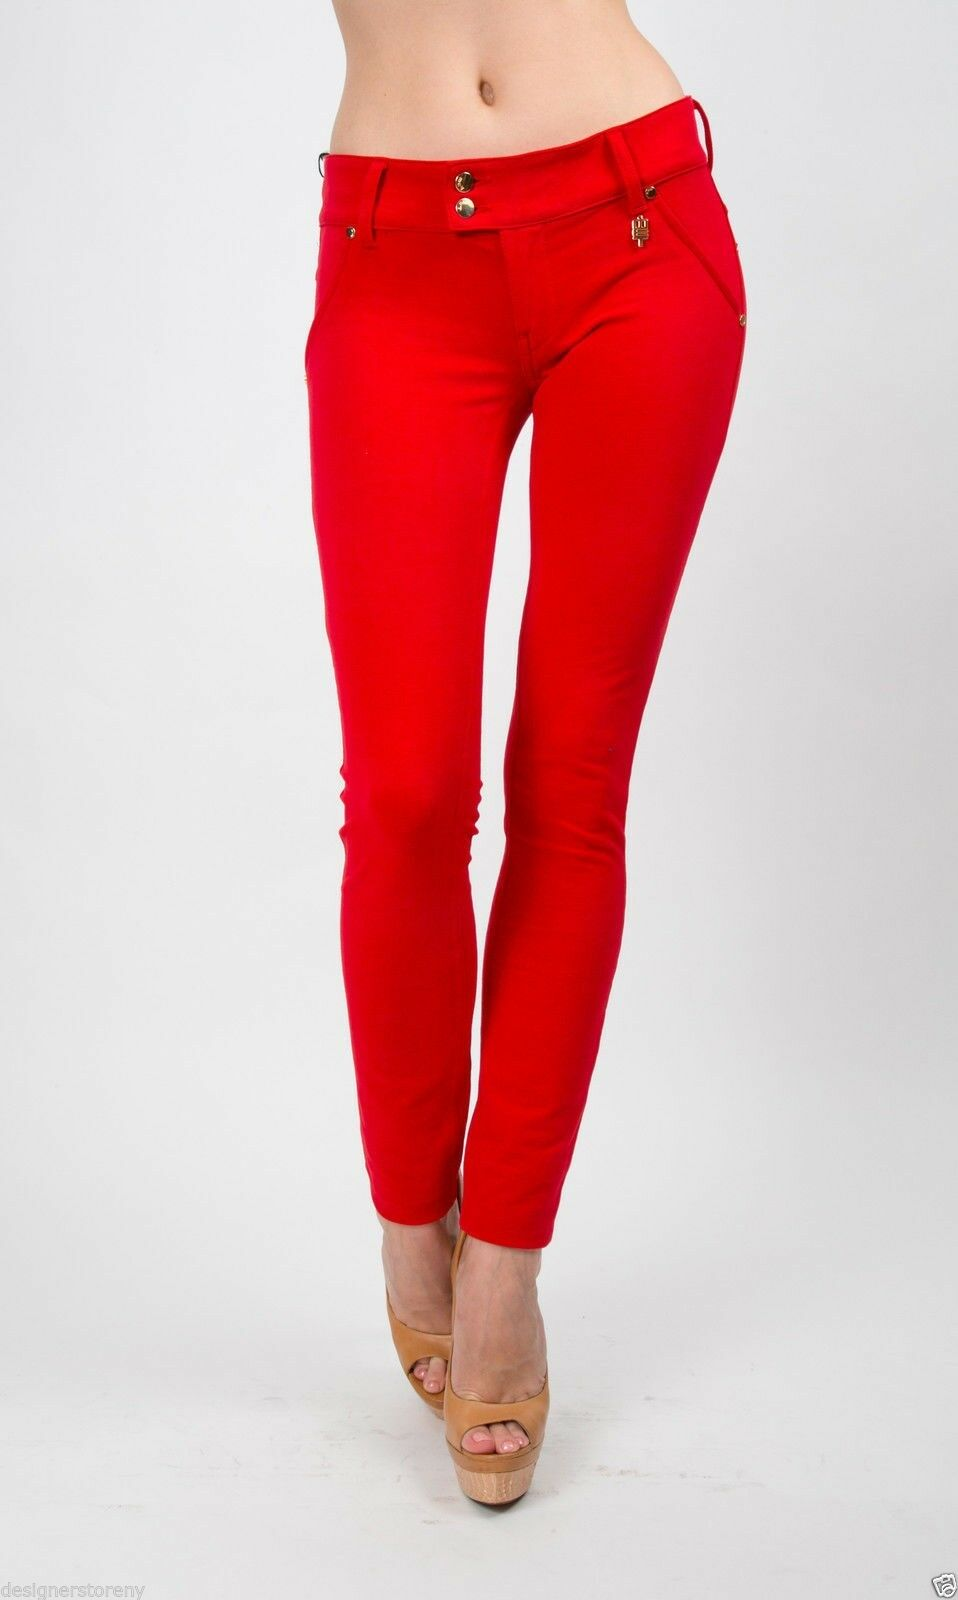 MET in Jeans K-FIT J green Red Stretch Pants Slim fit plush trousers low-waist